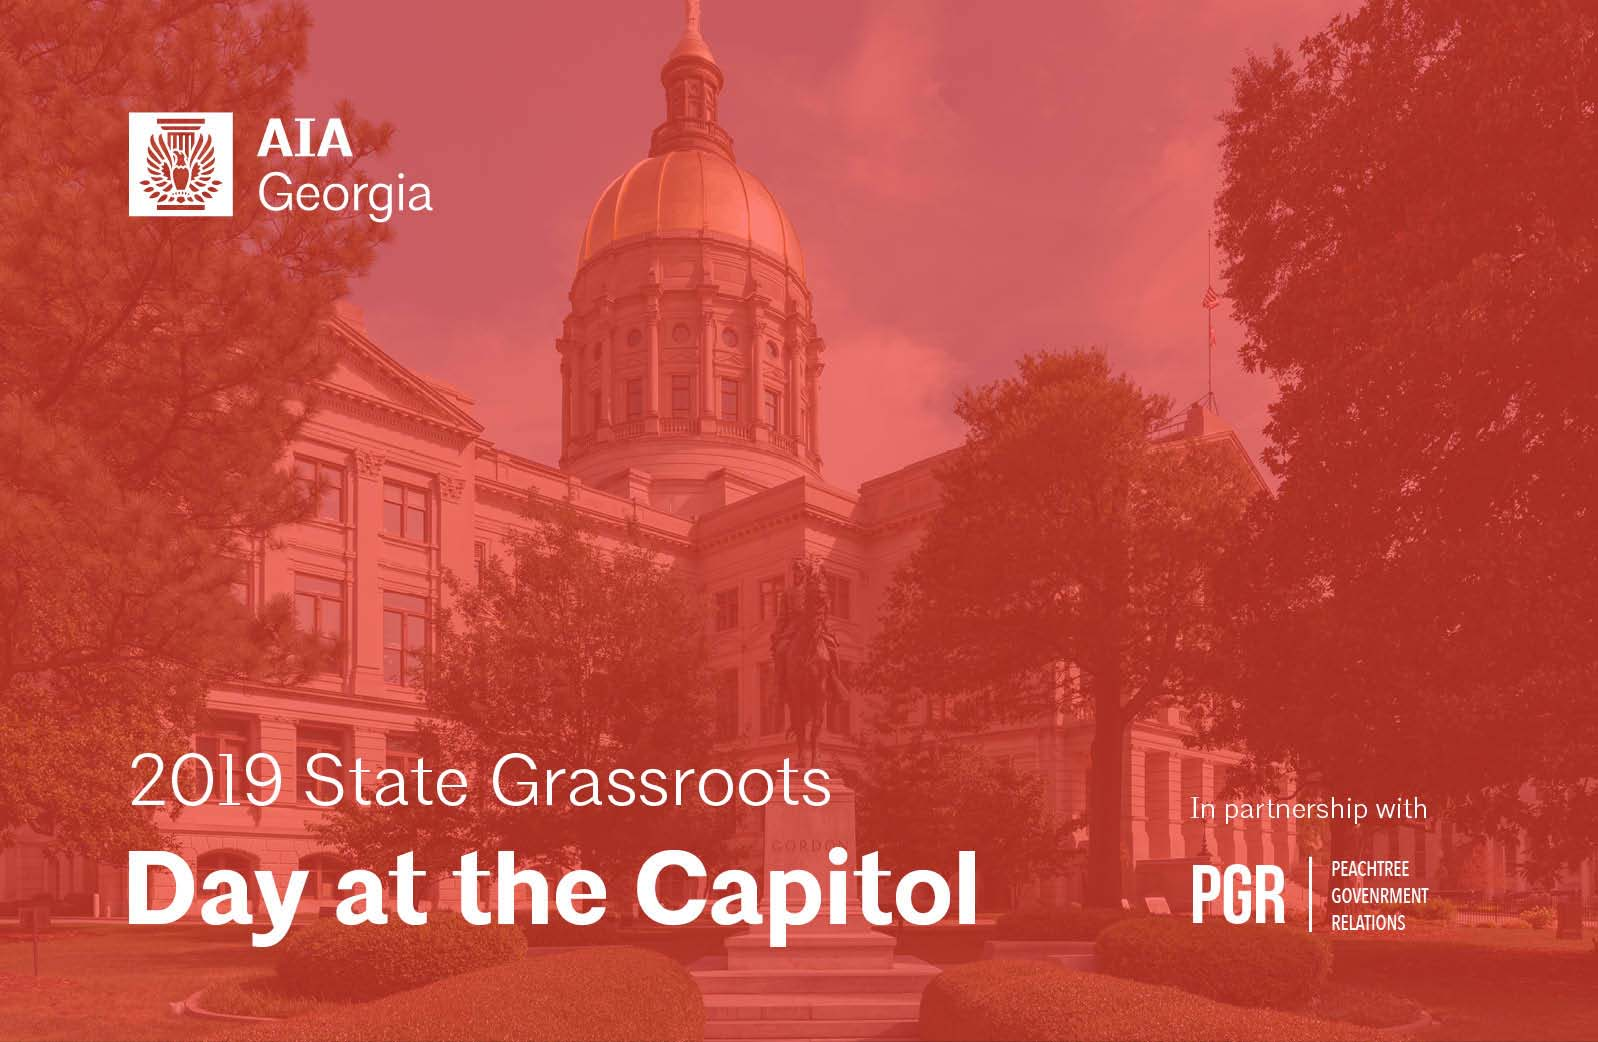 State Grassroots: Day at the Capitol